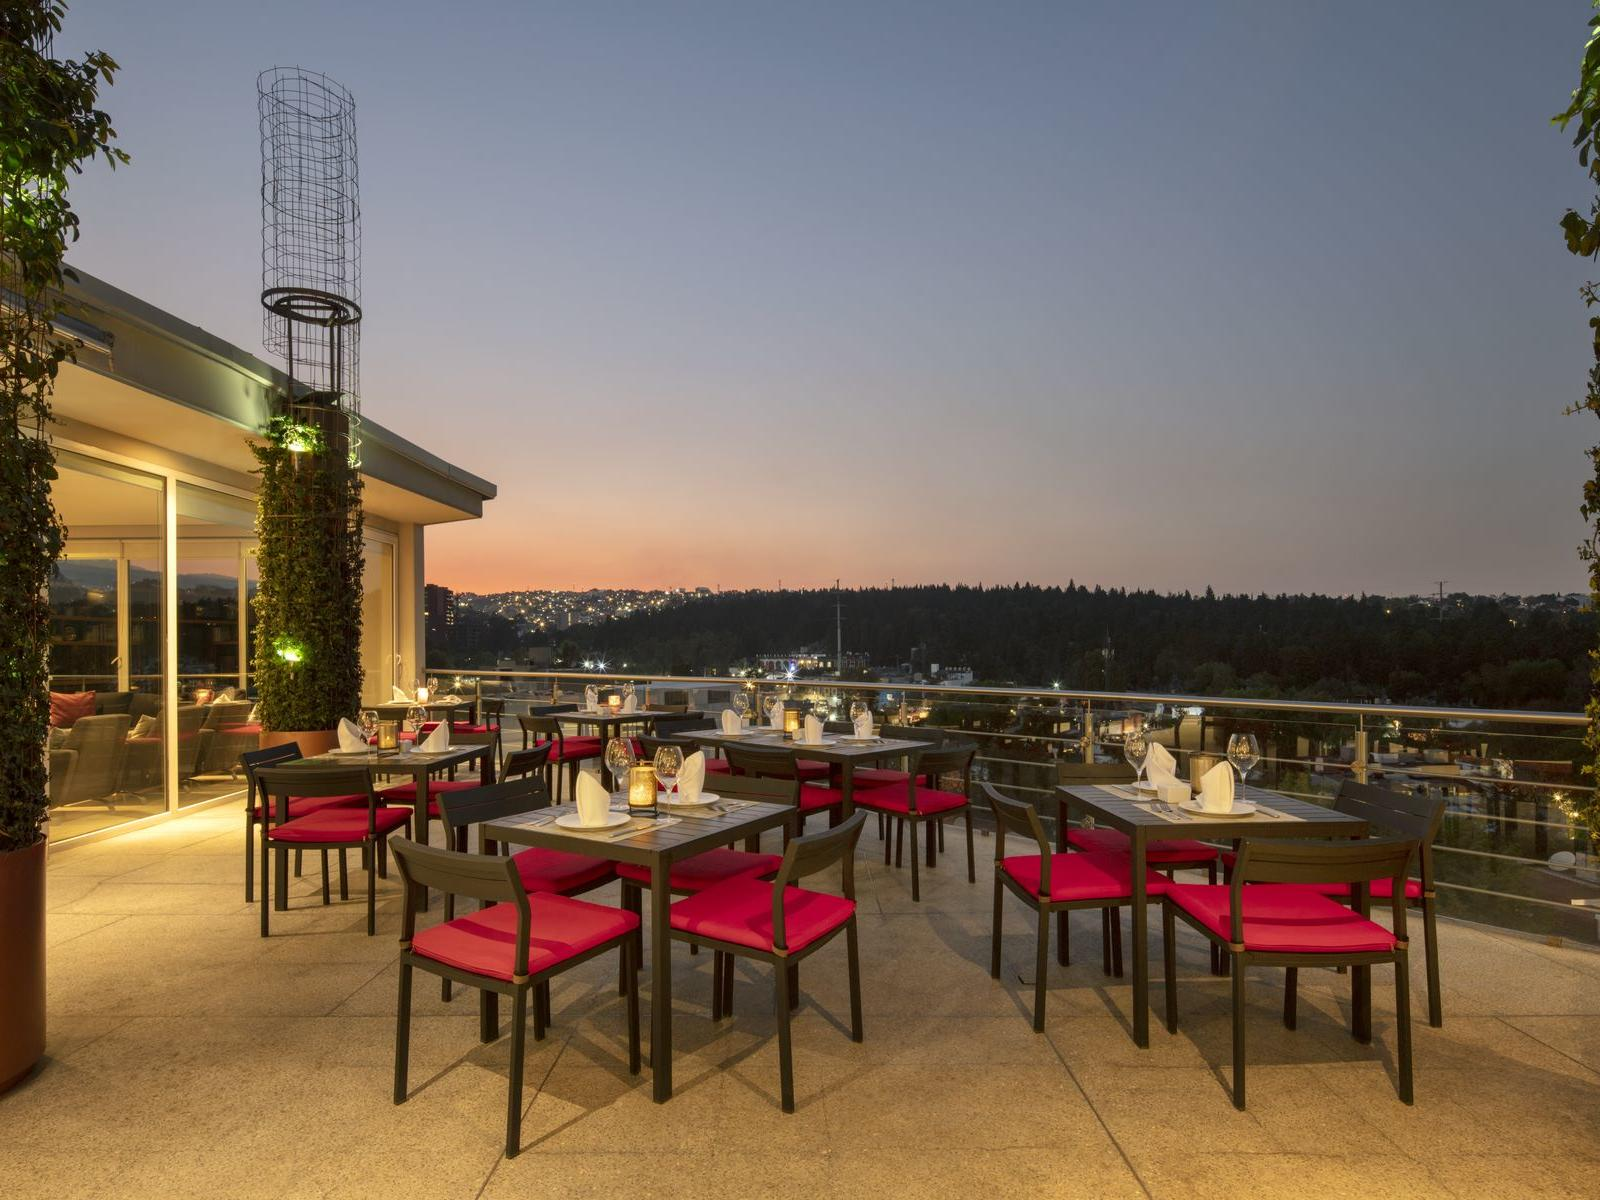 outdoor restaurant with tables and chairs overlooking hills and sunset